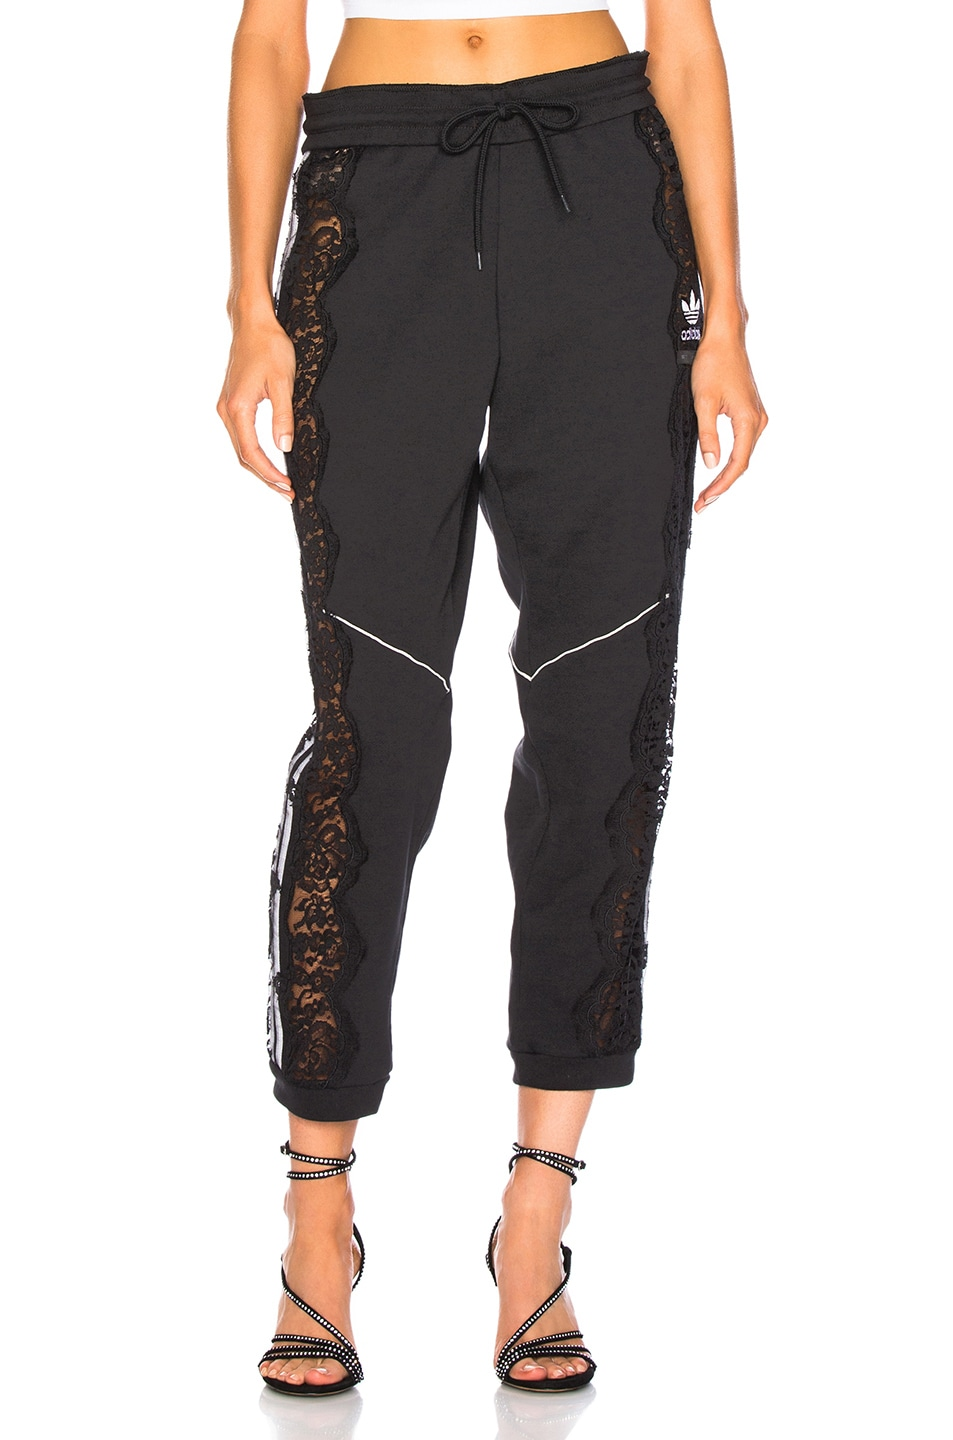 Image 2 of Stella McCartney x adidas Lace Trim Sweatpants in Black